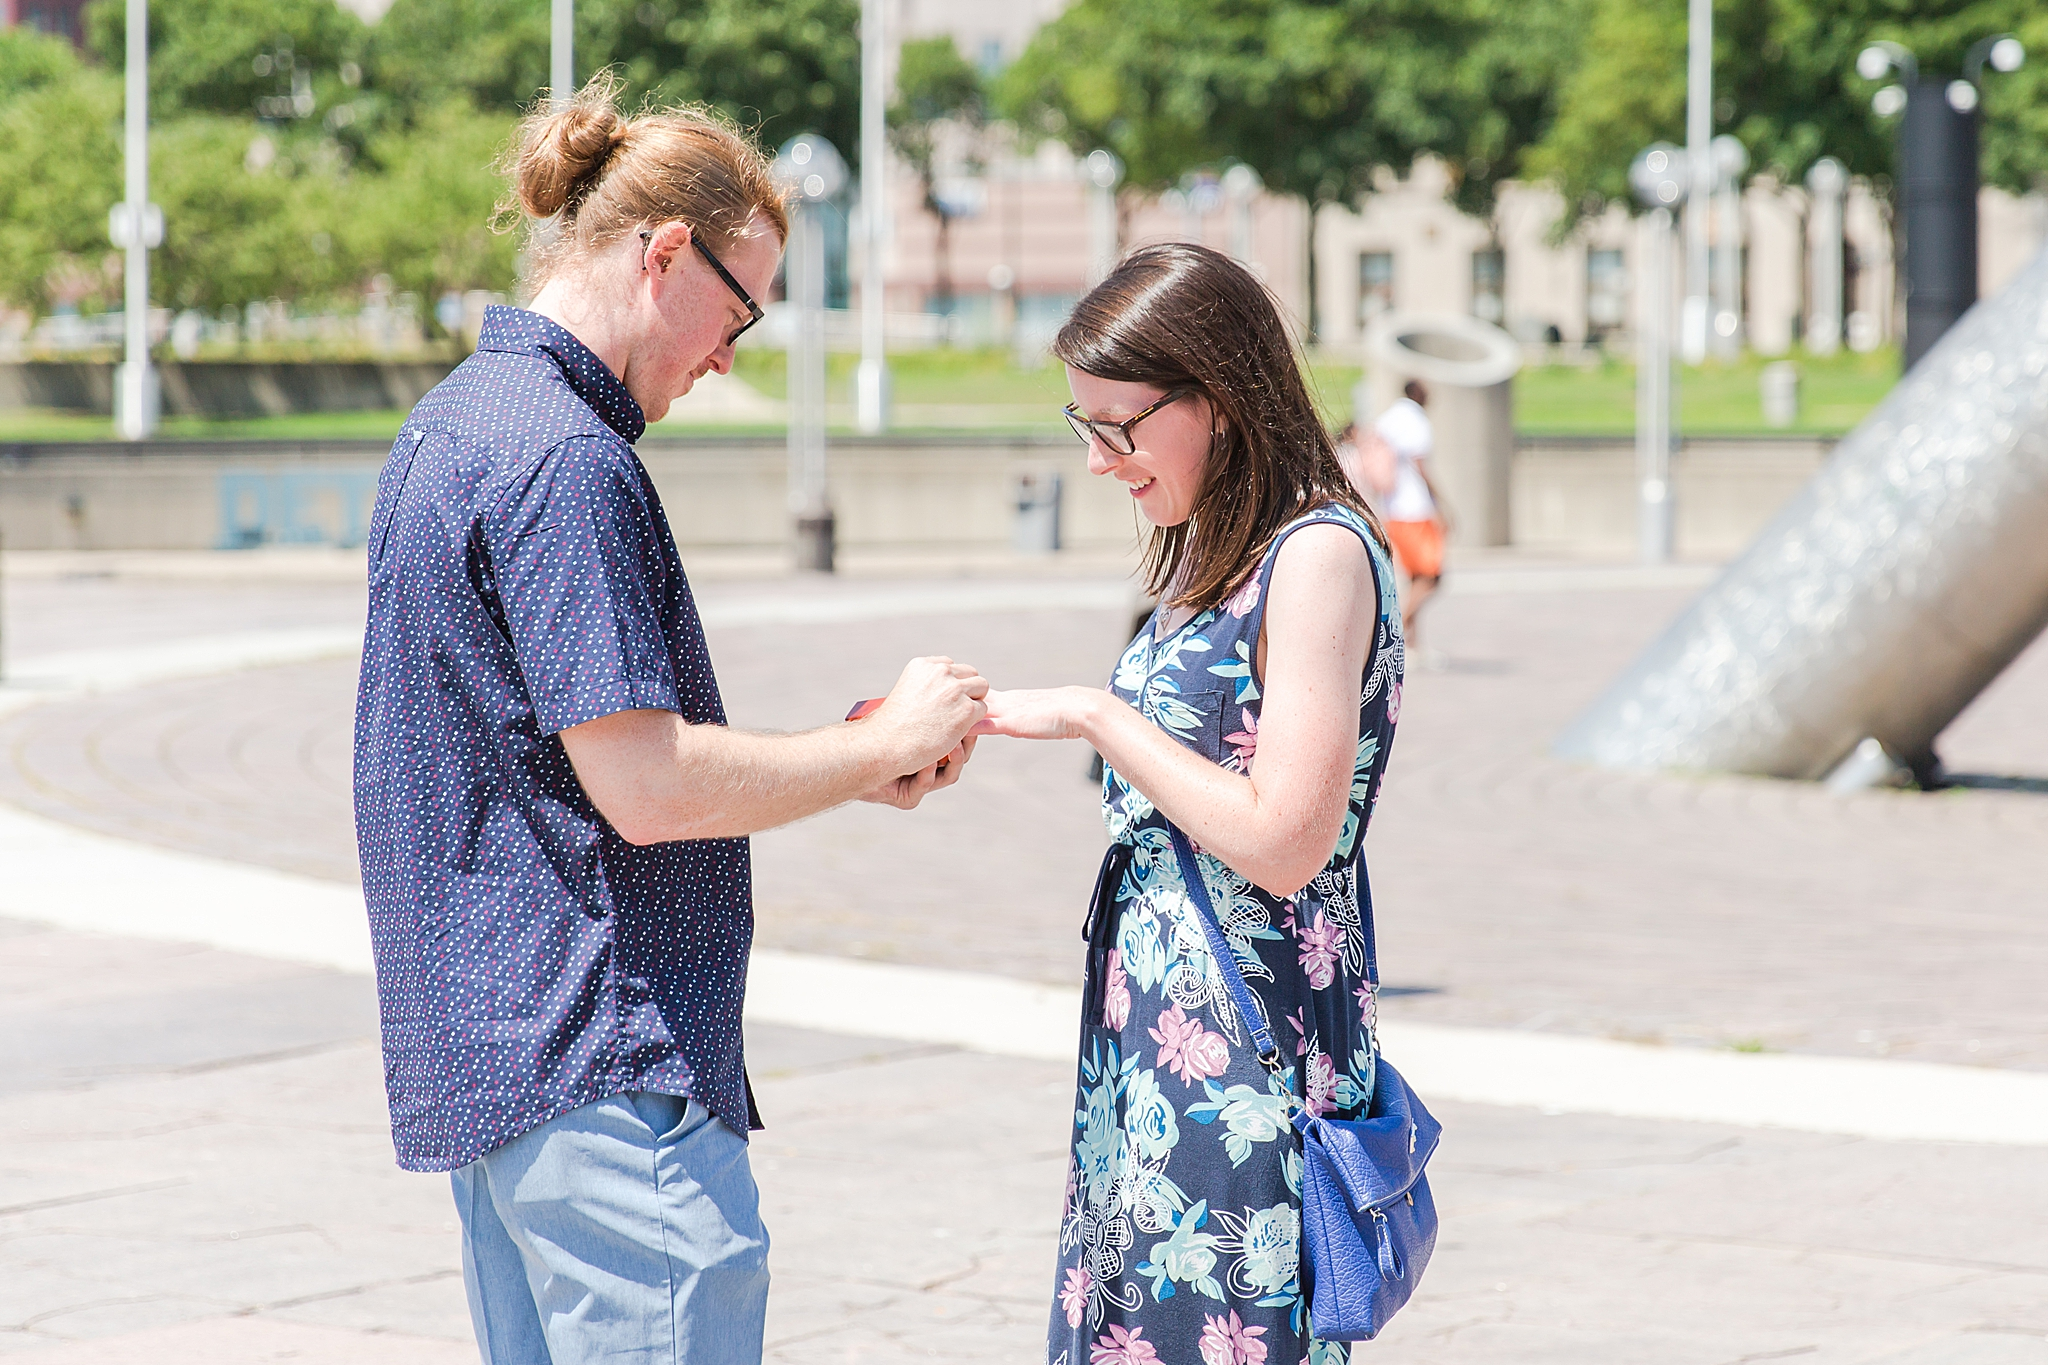 detroit-wedding-photographer-surprise-proposal-in-downtown-detroit-josh-taylor-by-courtney-carolyn-photography_0006.jpg